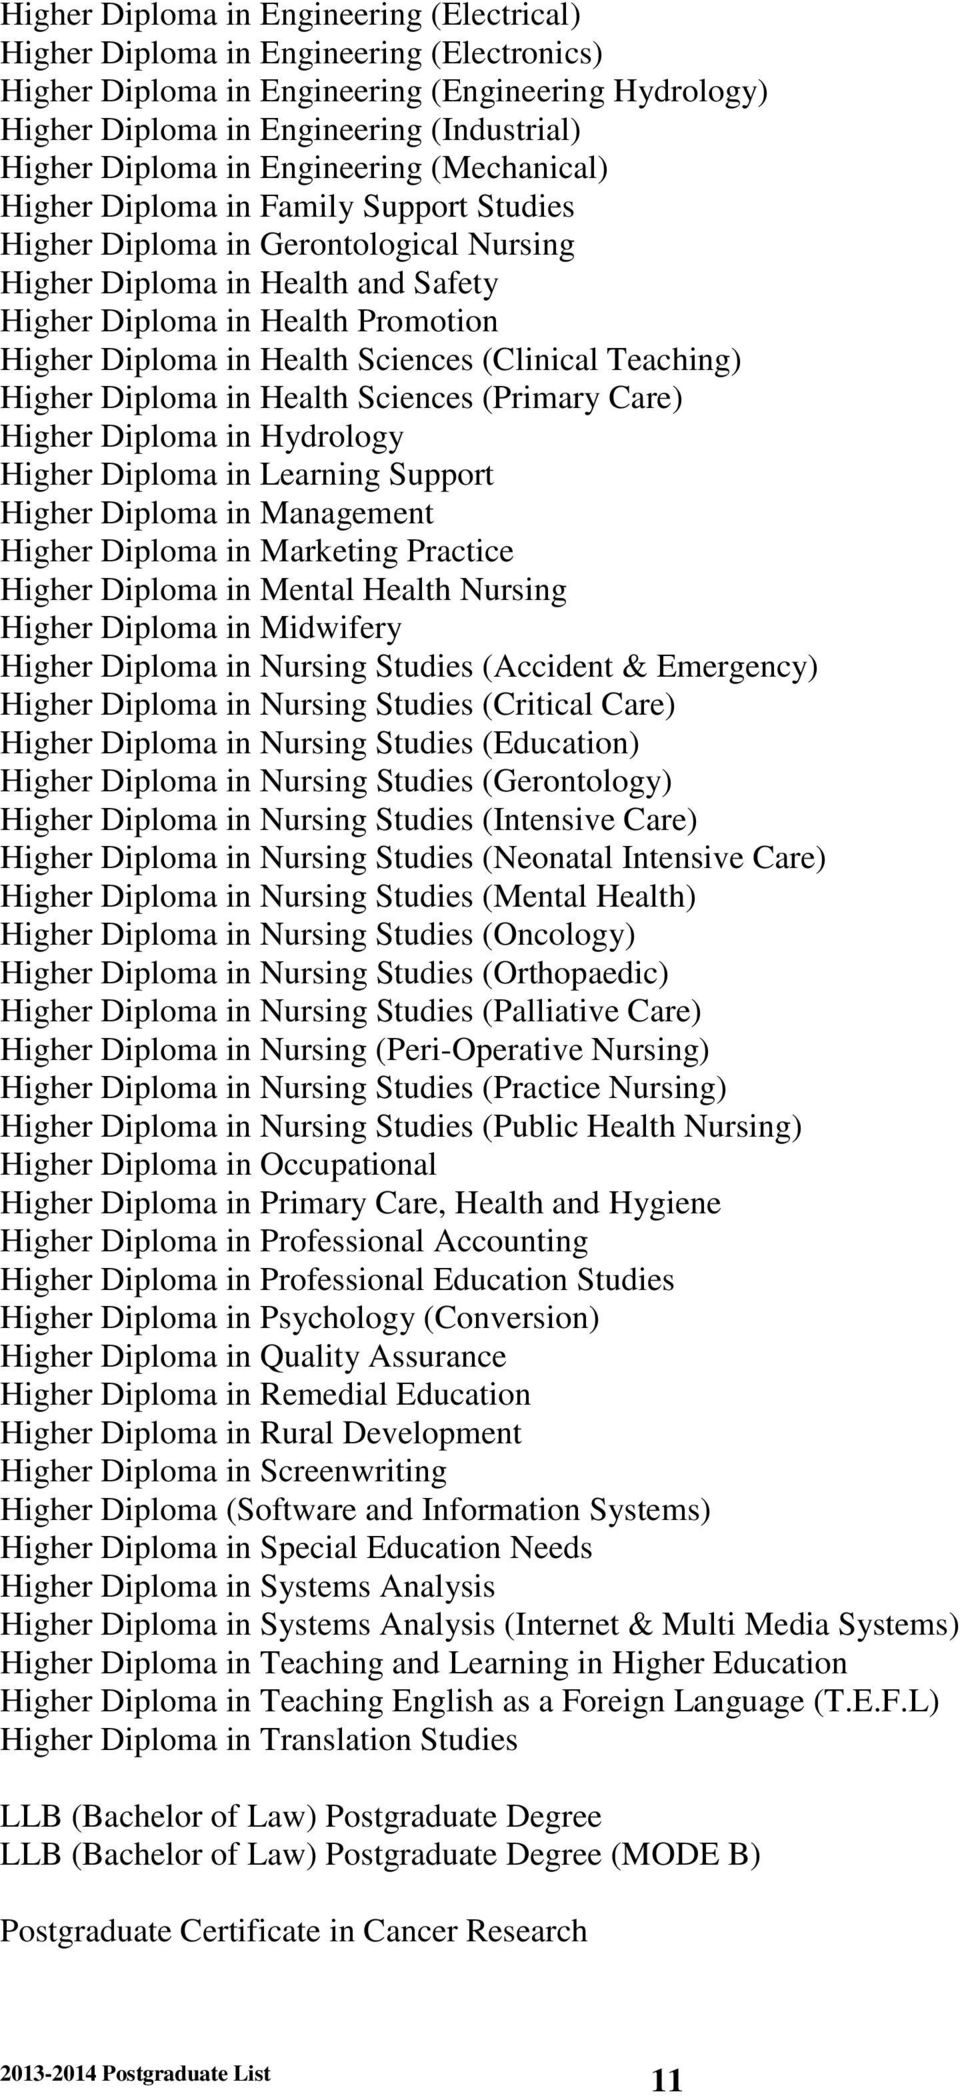 Health Sciences (Clinical Teaching) Higher Diploma in Health Sciences (Primary Care) Higher Diploma in Hydrology Higher Diploma in Learning Support Higher Diploma in Management Higher Diploma in